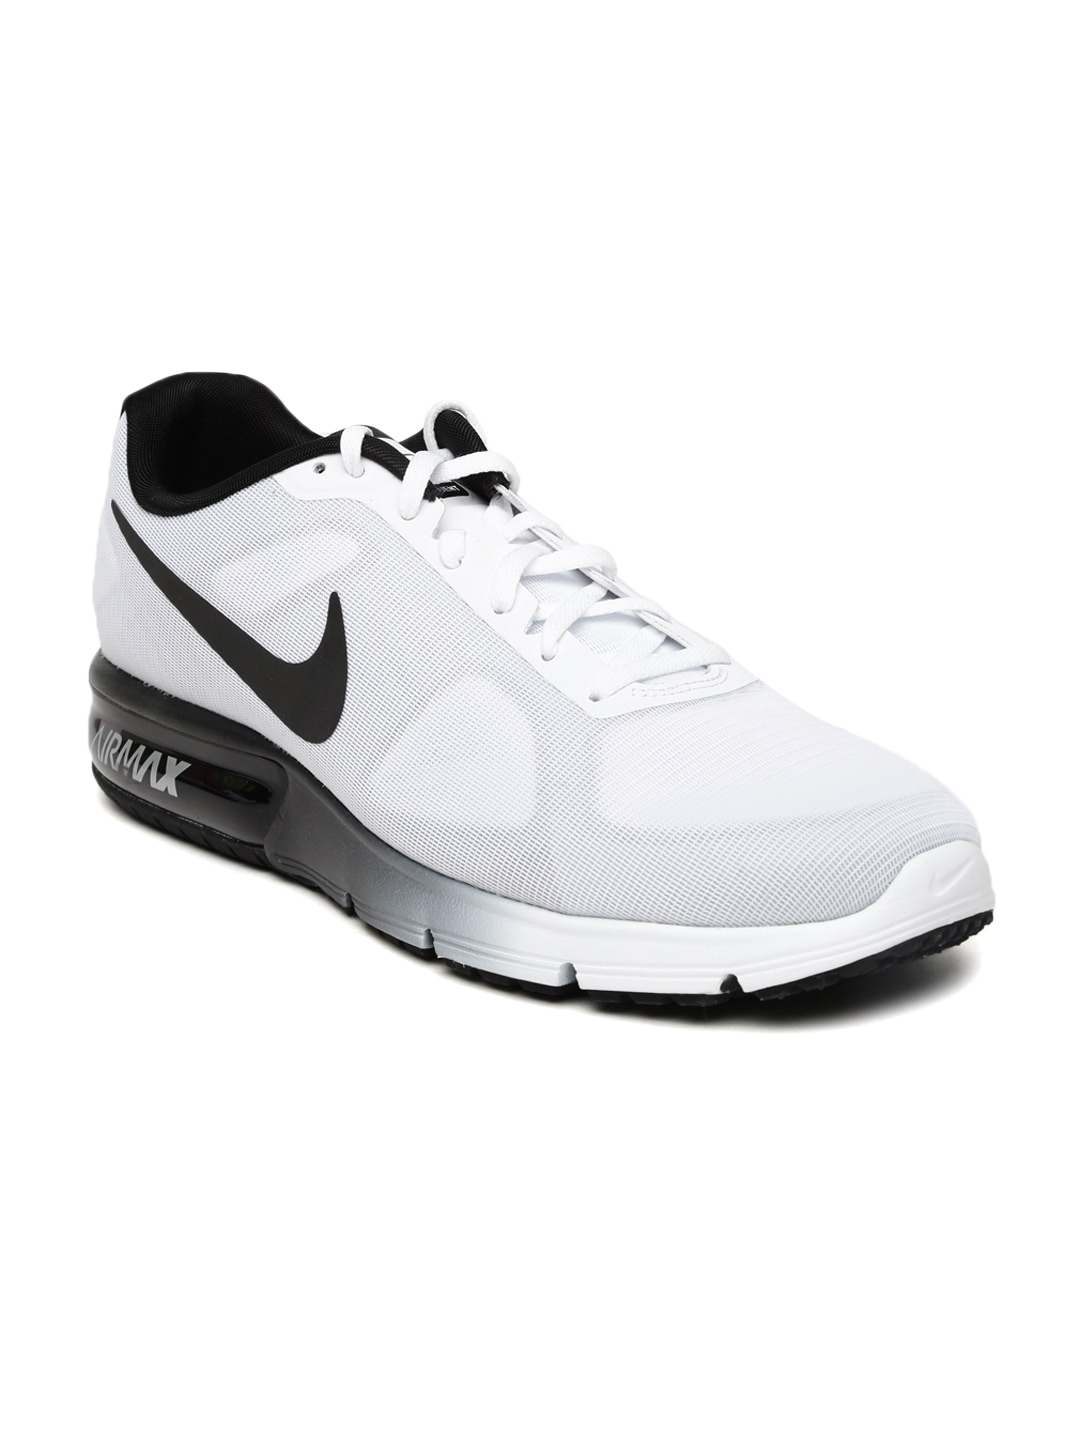 967c4e7e19617 Nike 719912-101 Men White Air Max Sequent Running Shoes - Best ...